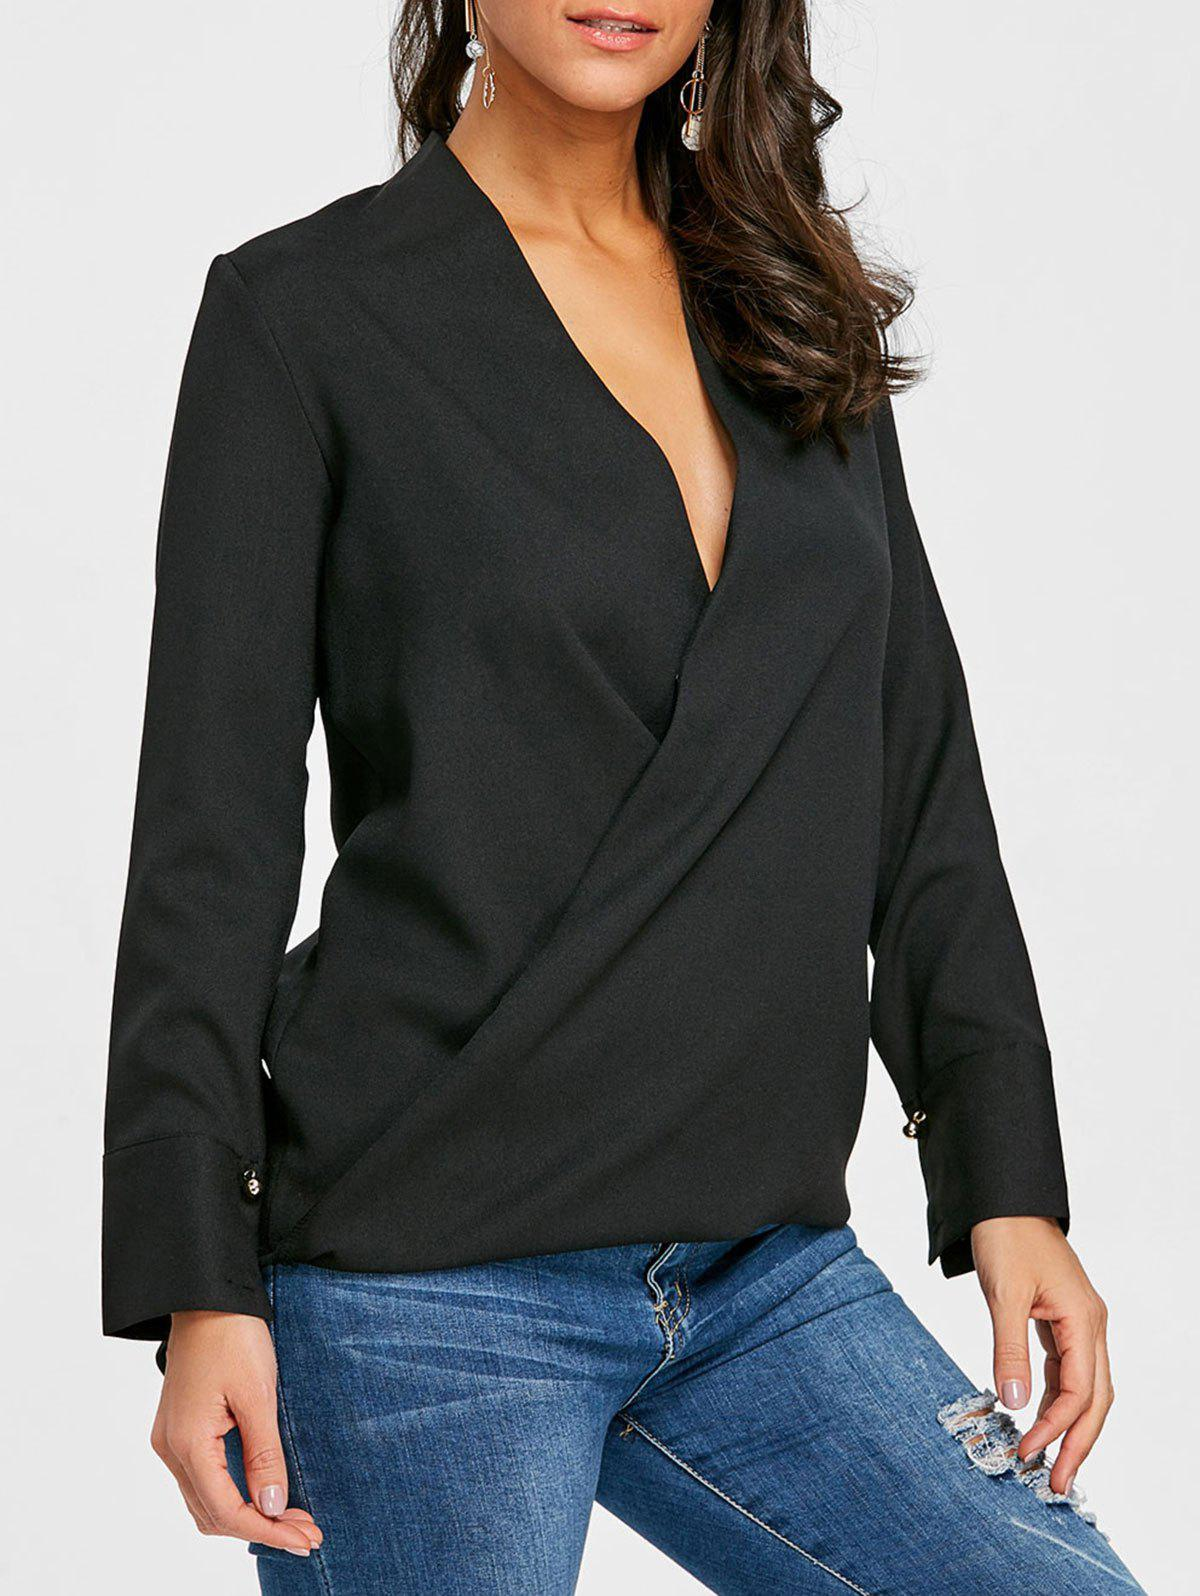 Hot Plunge High Low Chiffon Blouse